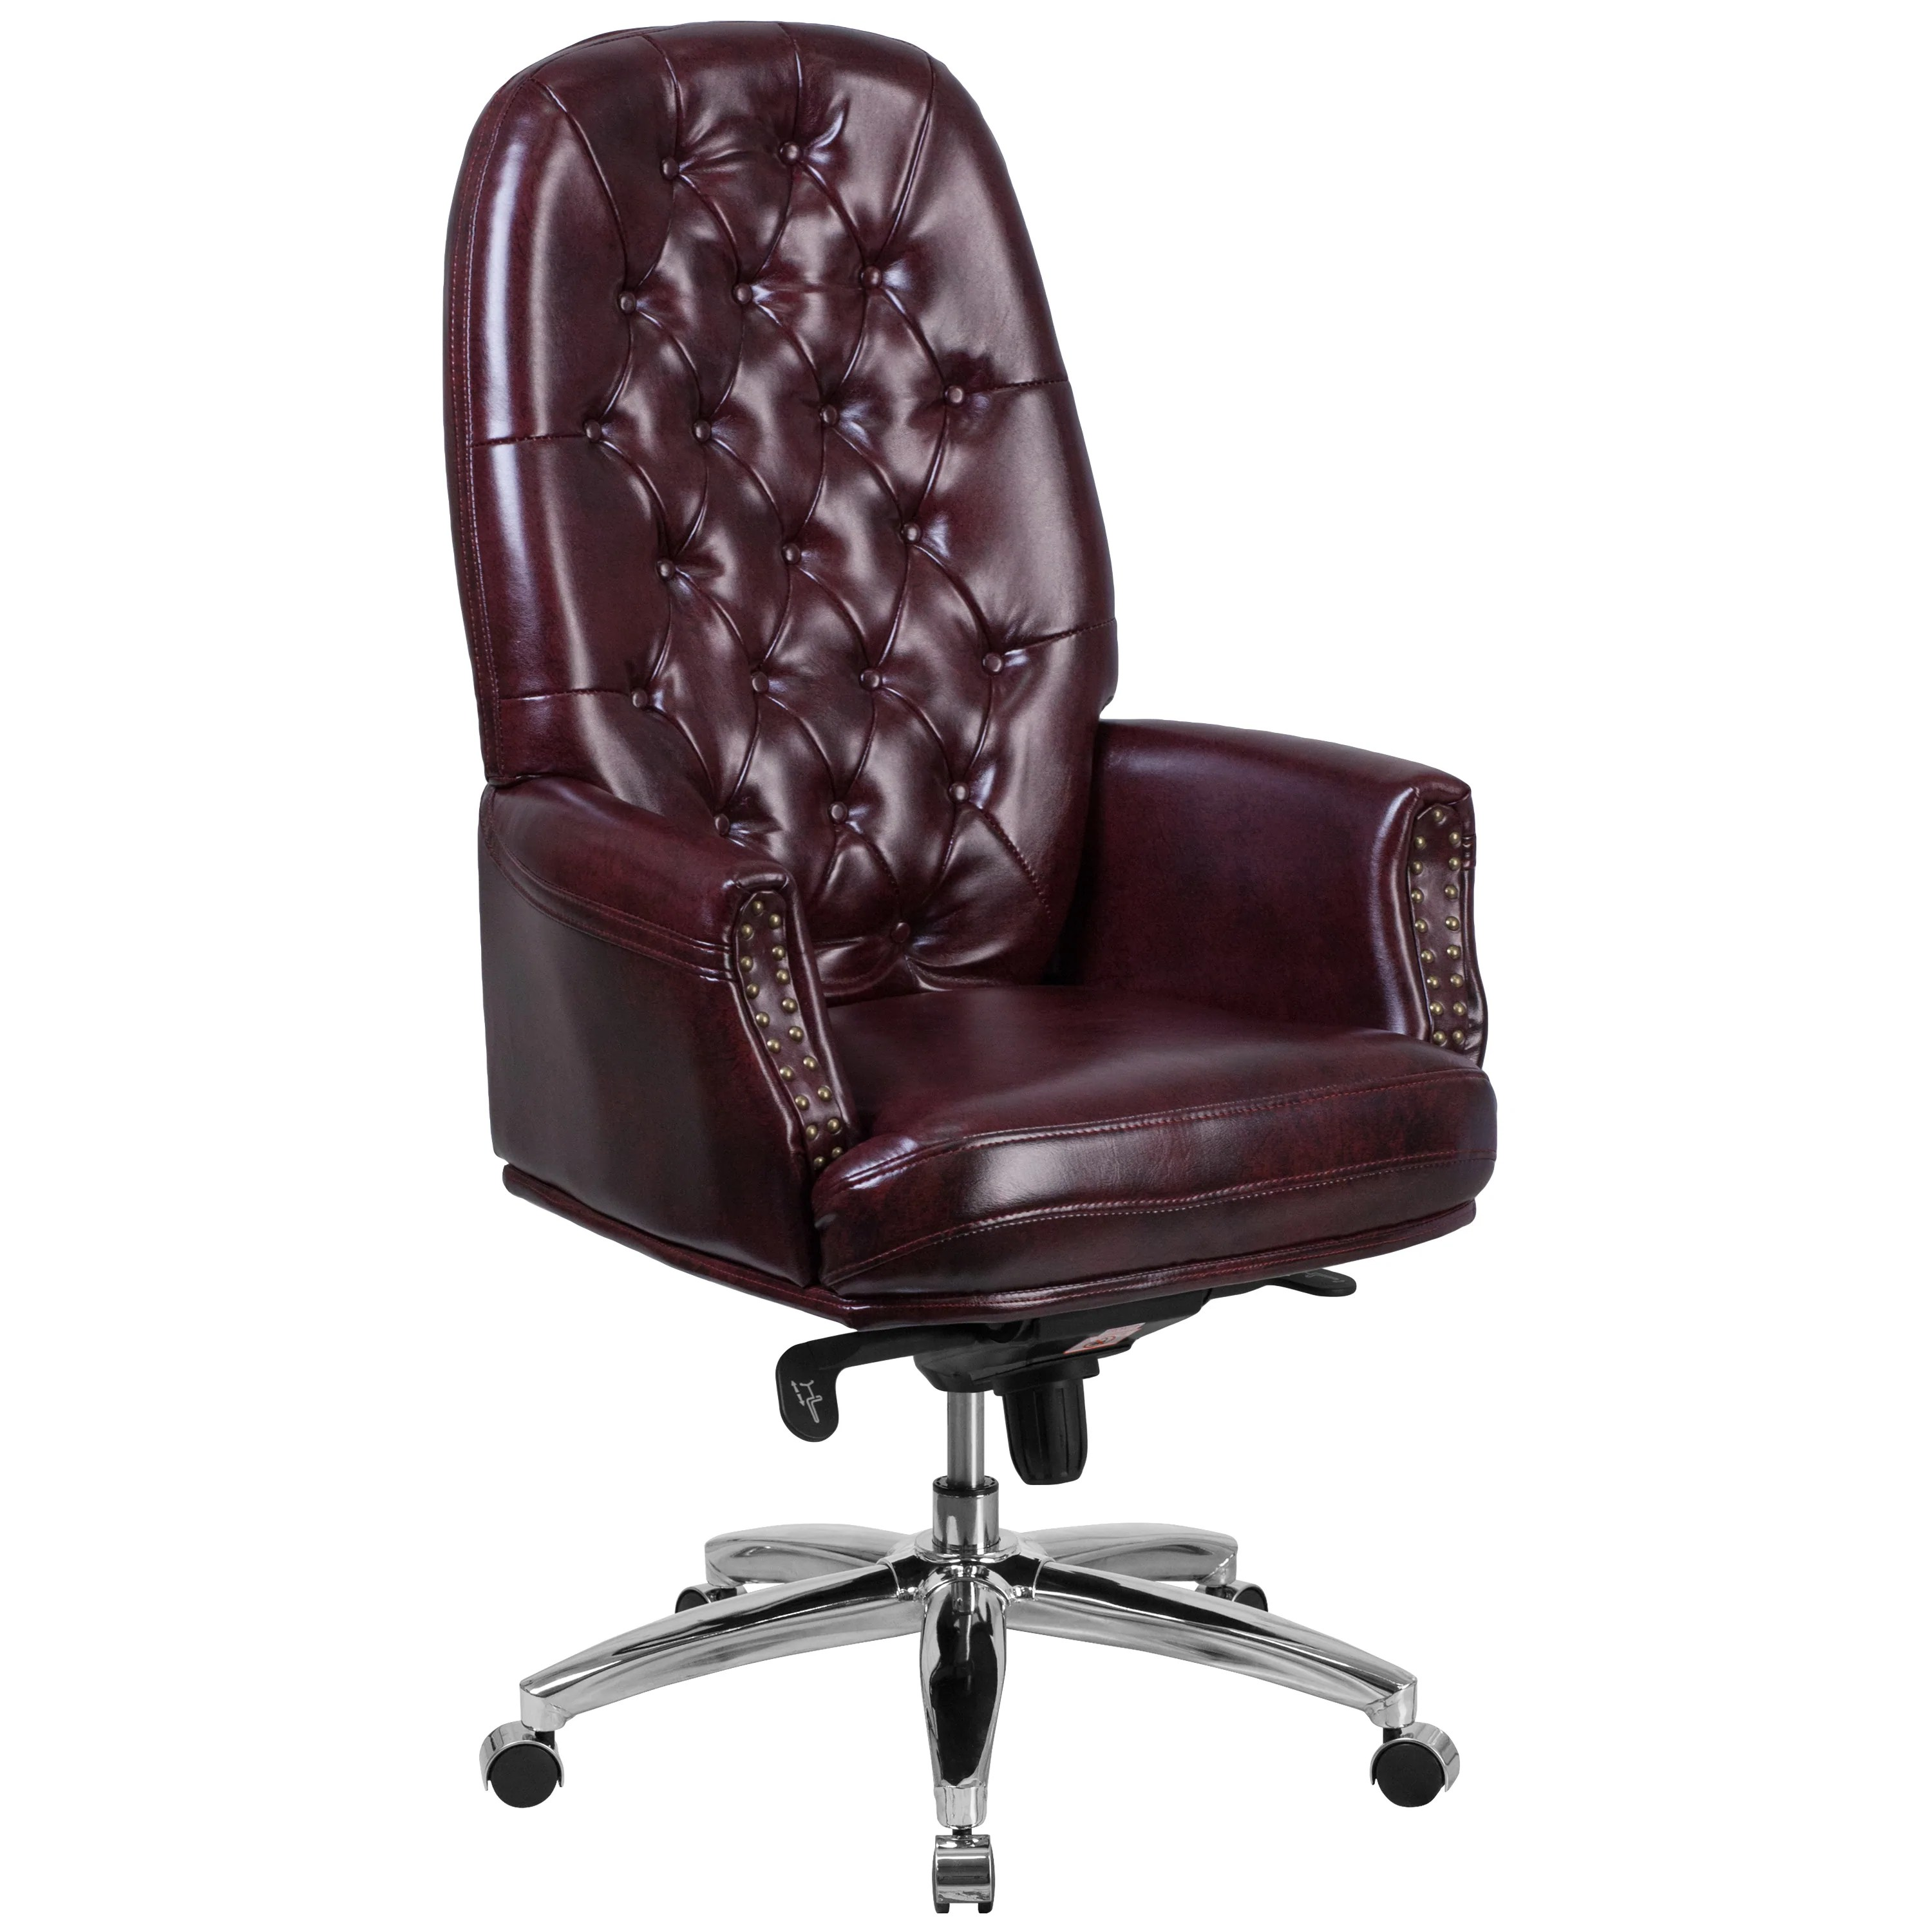 Tufted Leather Office Chair High Back Traditional Tufted Leather Multifunction Executive Swivel Chair With Arms